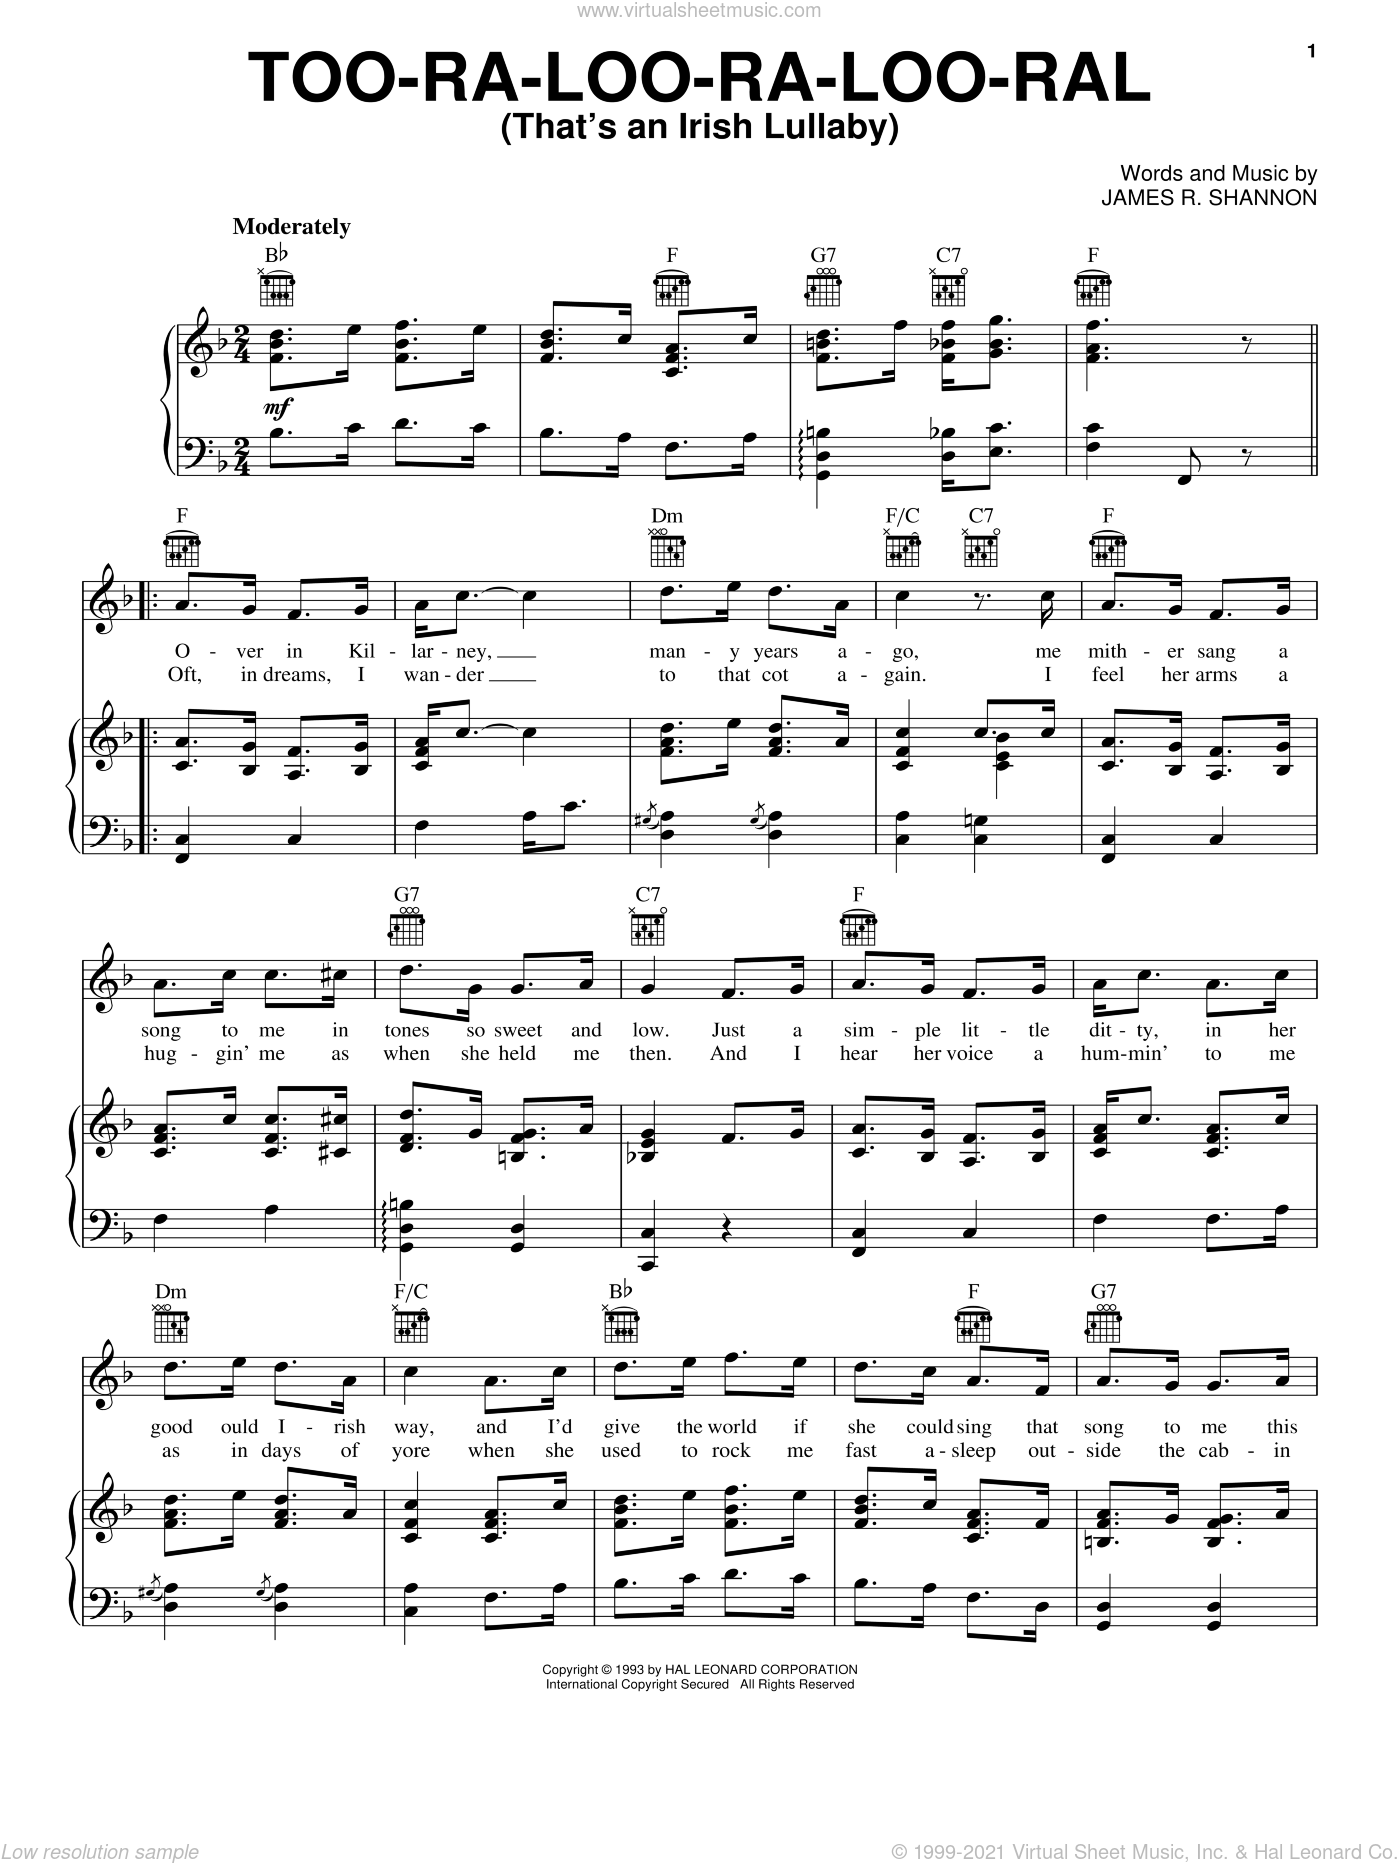 Too-Ra-Loo-Ra-Loo-Ral (That's An Irish Lullaby) sheet music for voice, piano or guitar by James R. Shannon. Score Image Preview.